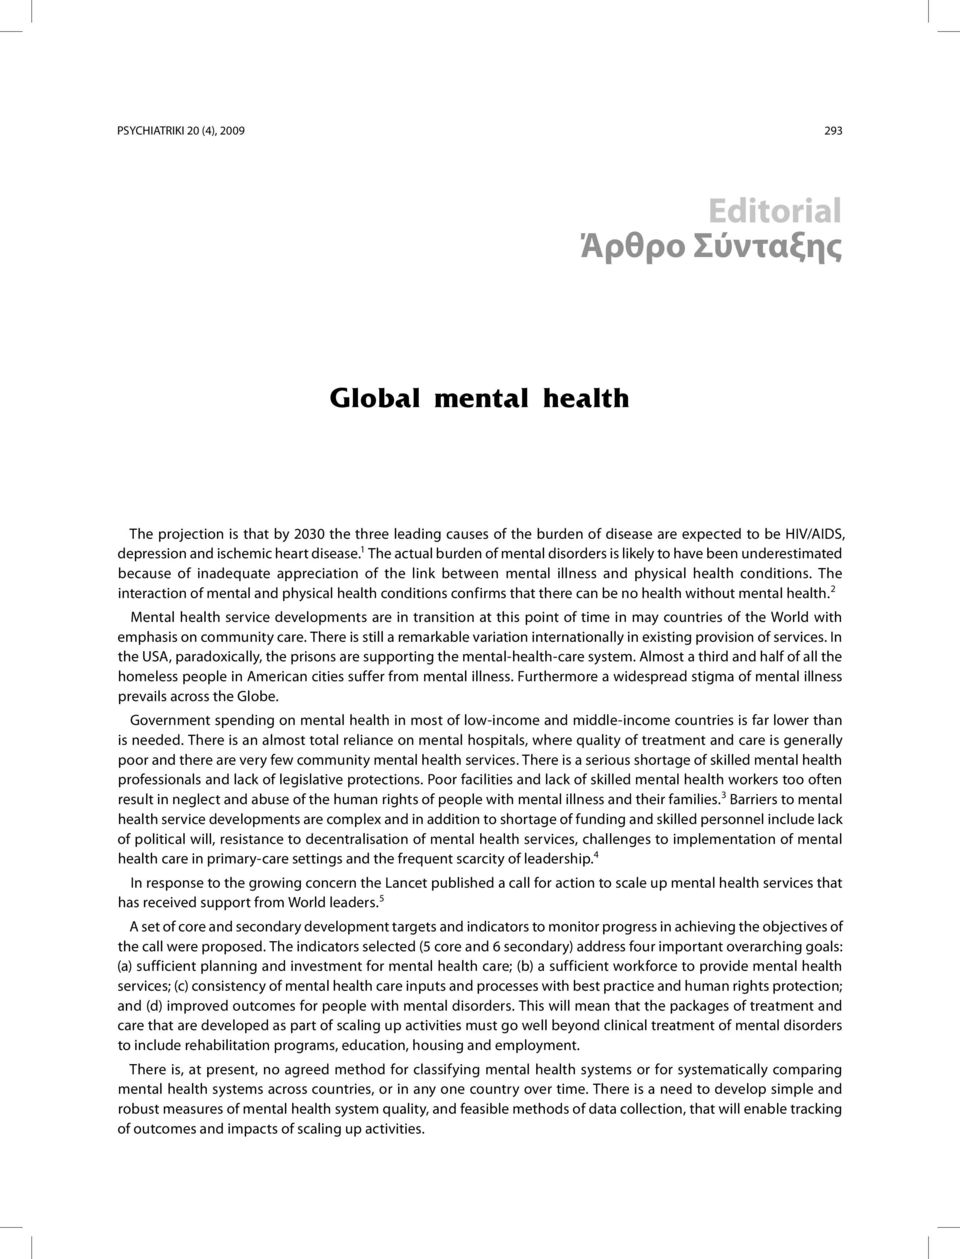 1 The actual burden of mental disorders is likely to have been underestimated because of inadequate appreciation of the link between mental illness and physical health conditions.